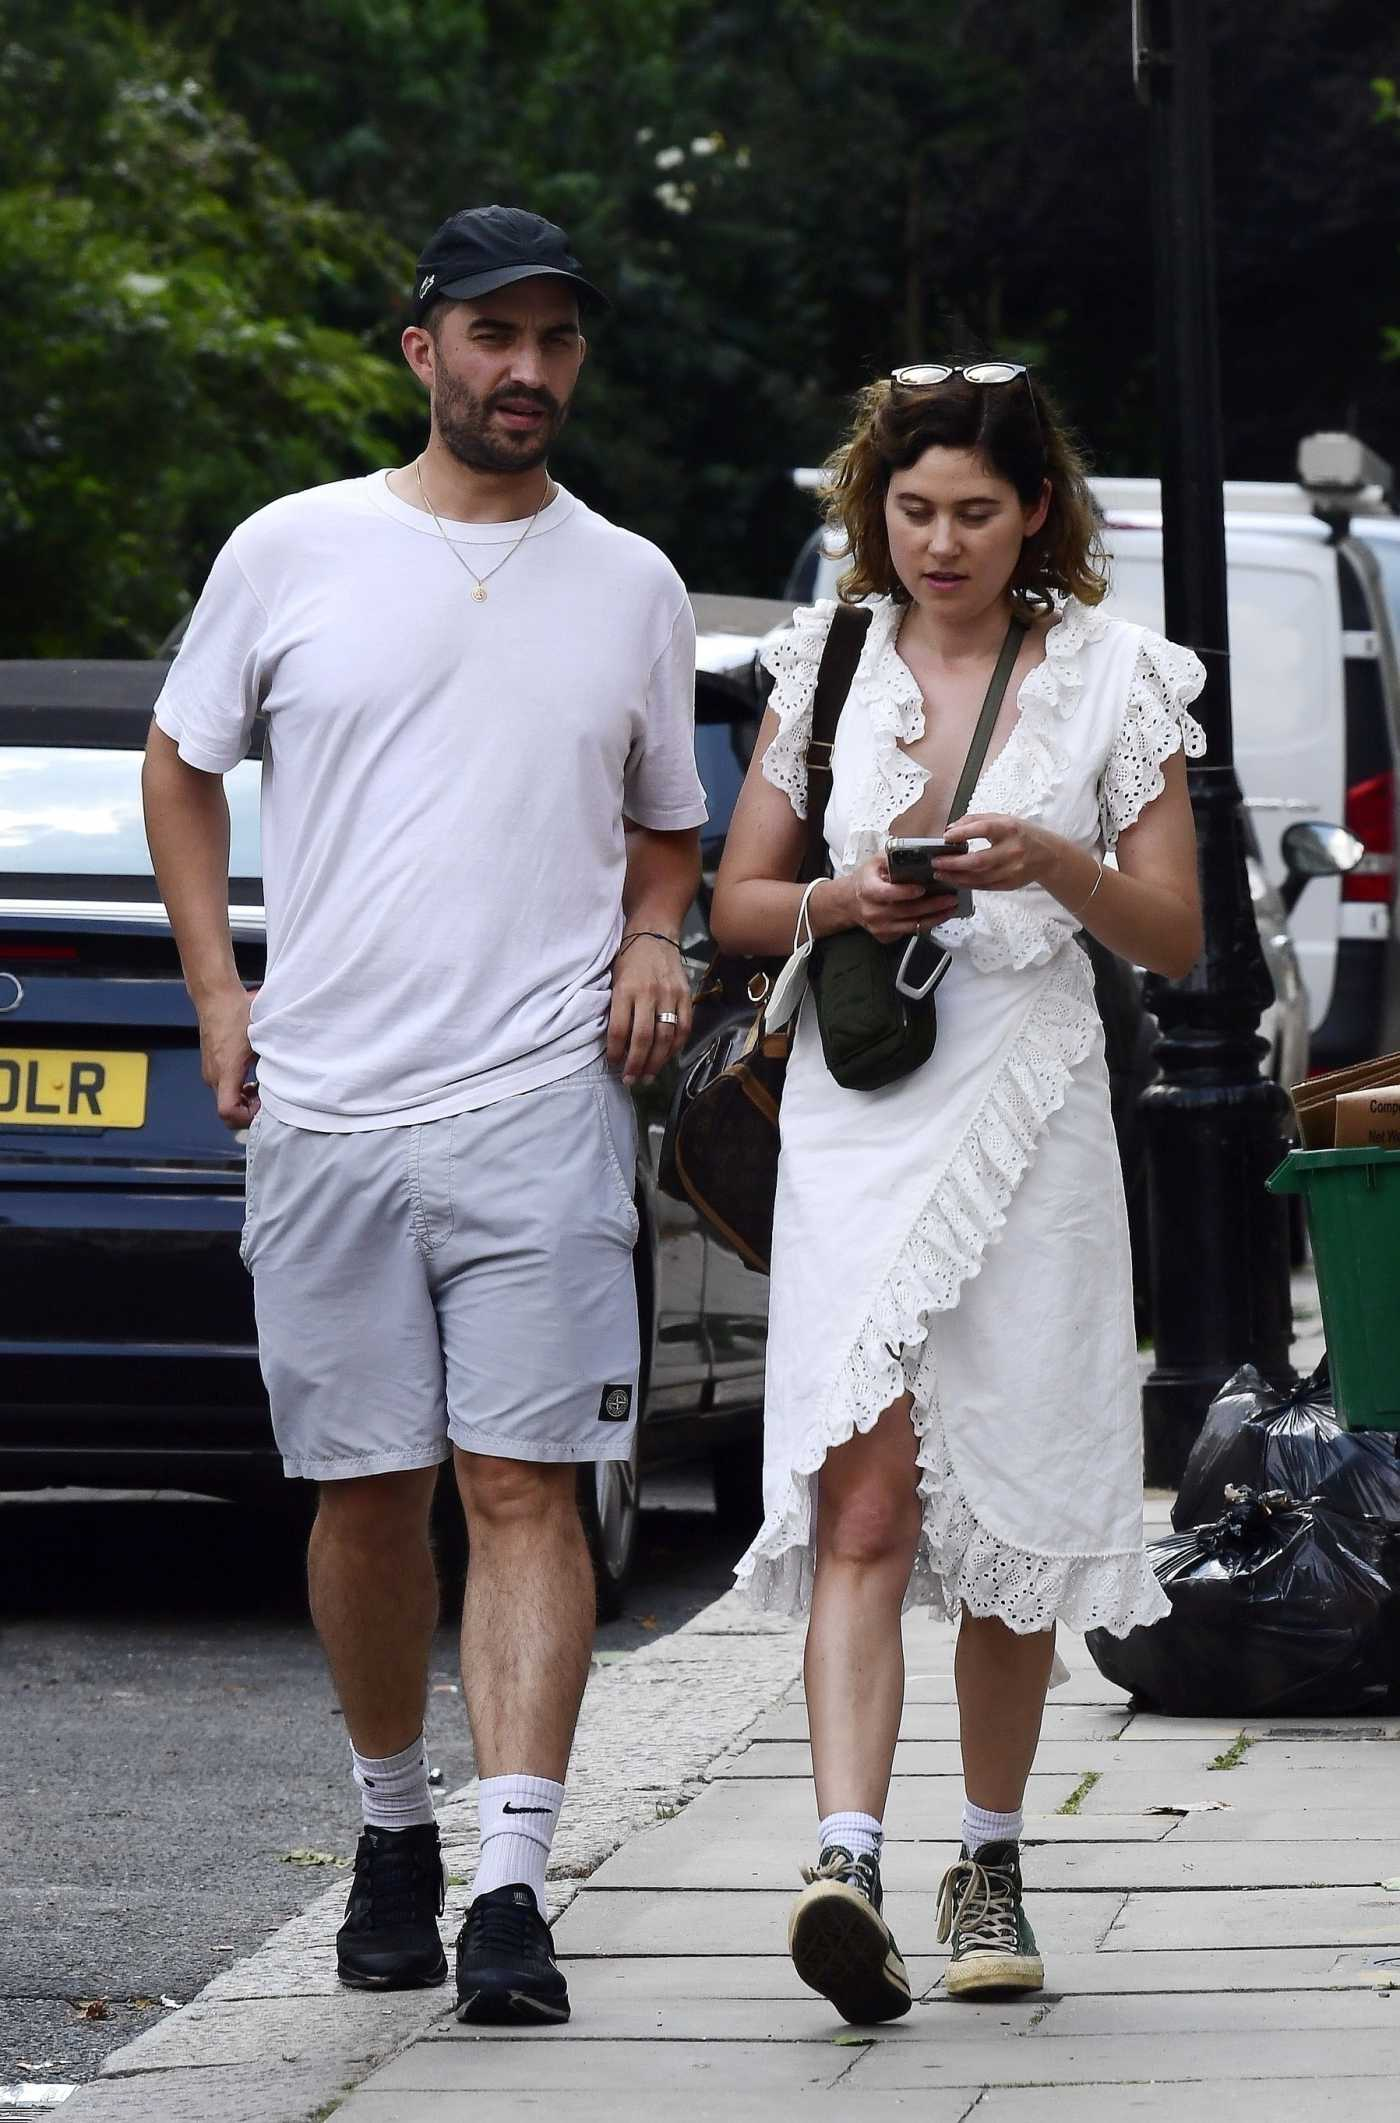 Eliza Doolittle in a White Dress Was Seen Out with a Mystery Man in North London 07/20/2021